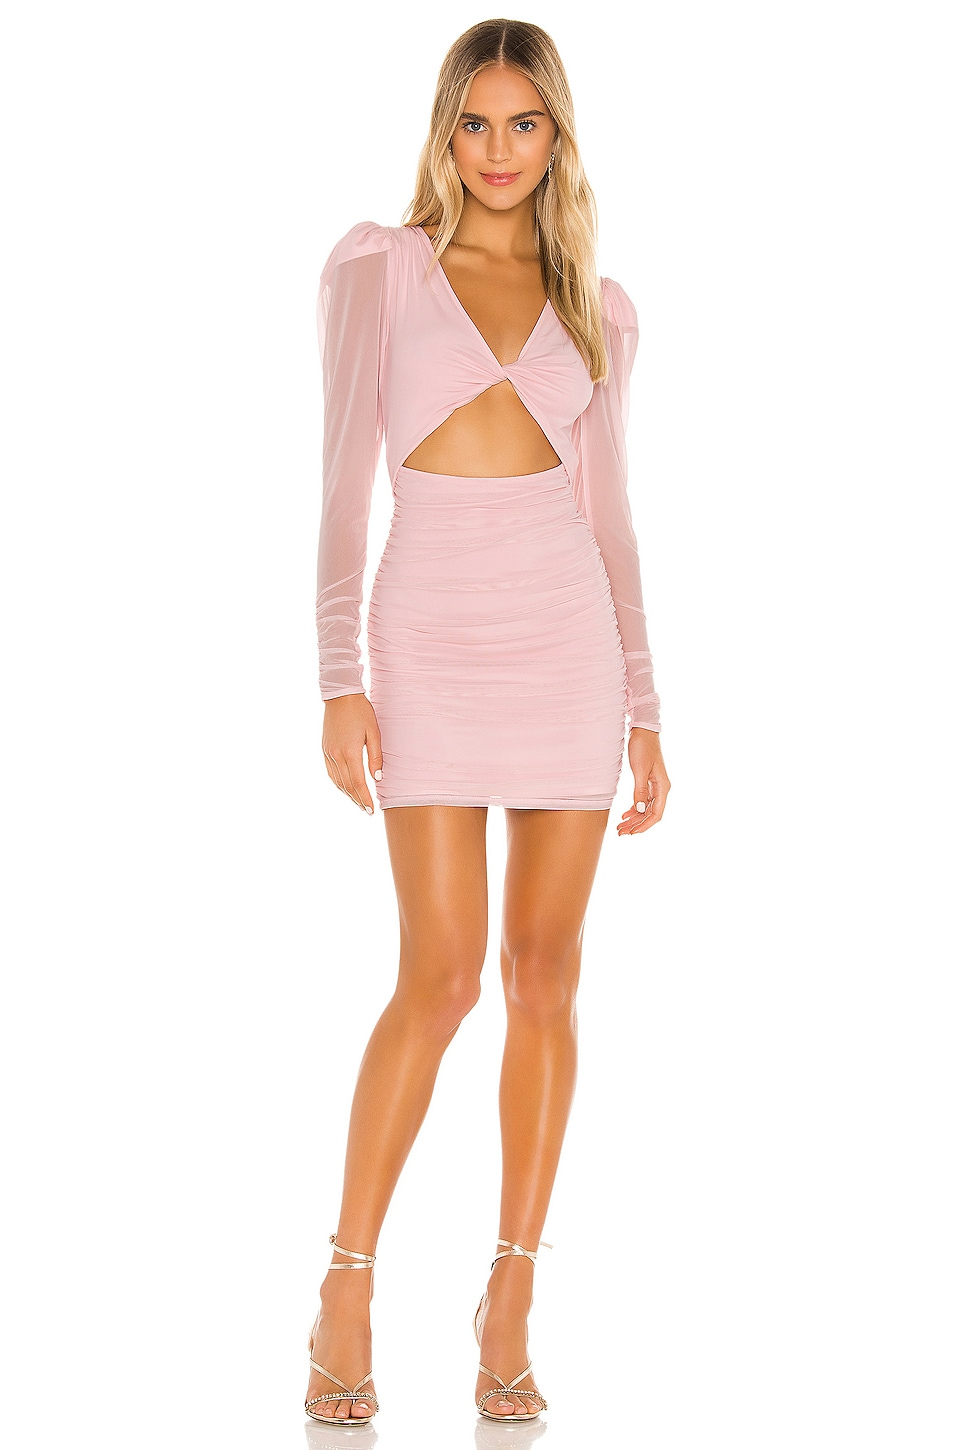 Lovers + Friends Celest Mini Dress in Ballet Pink